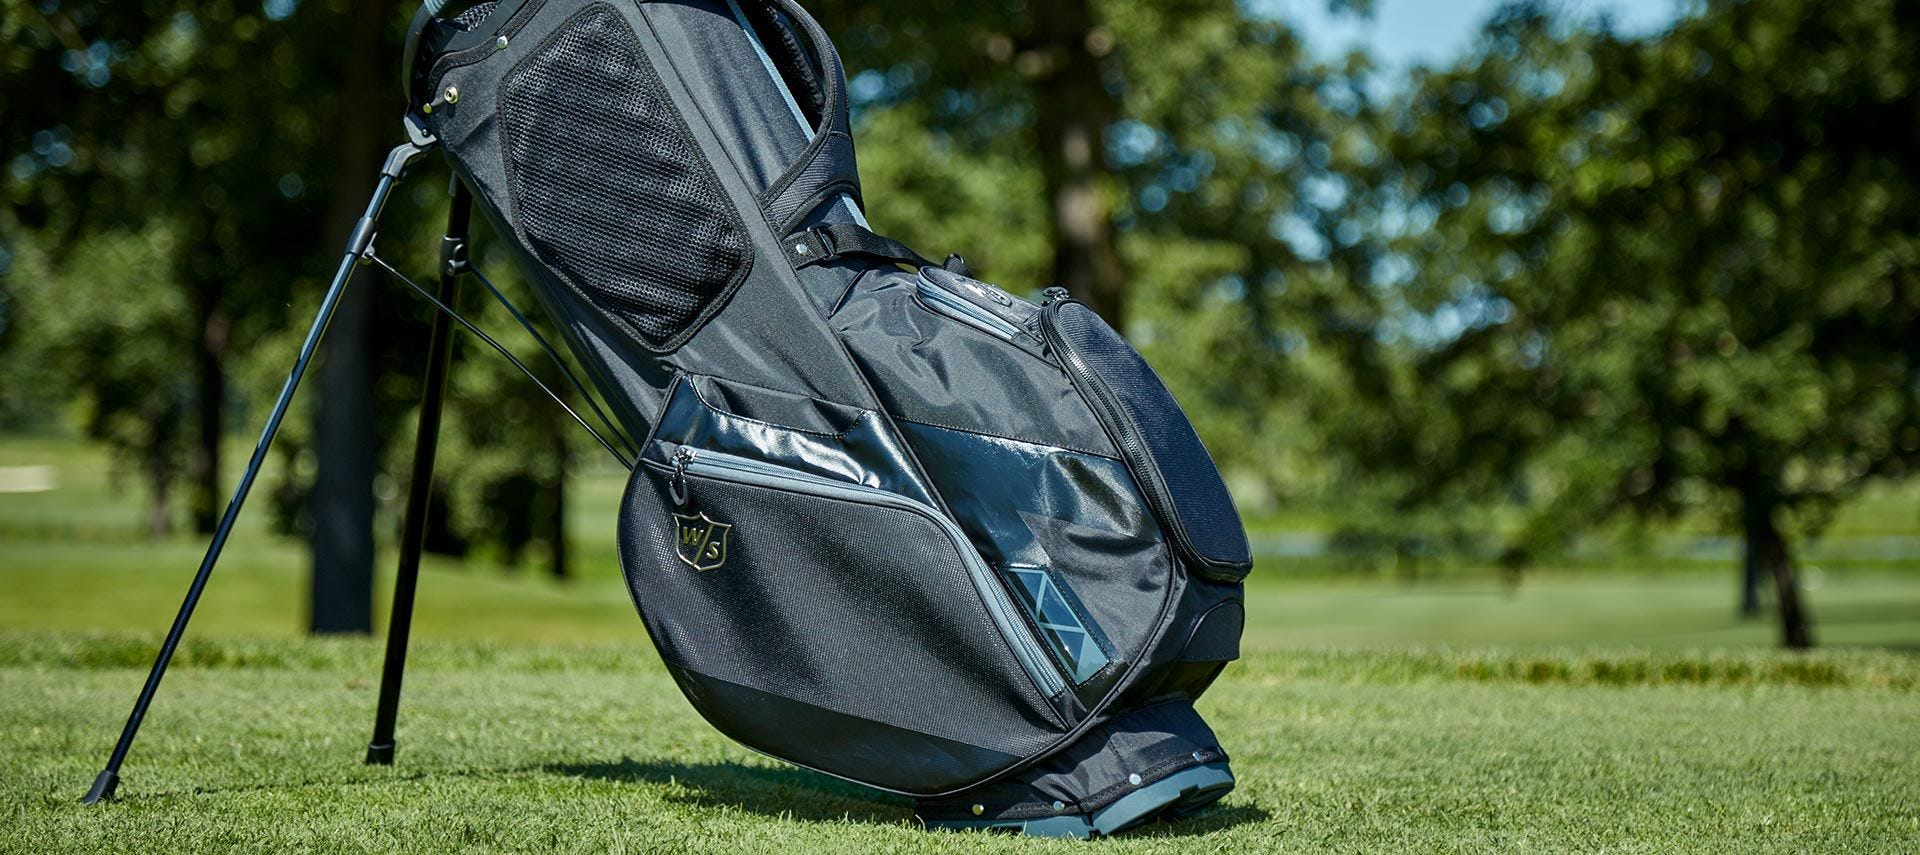 Full, side view of stand holding bag on golf course